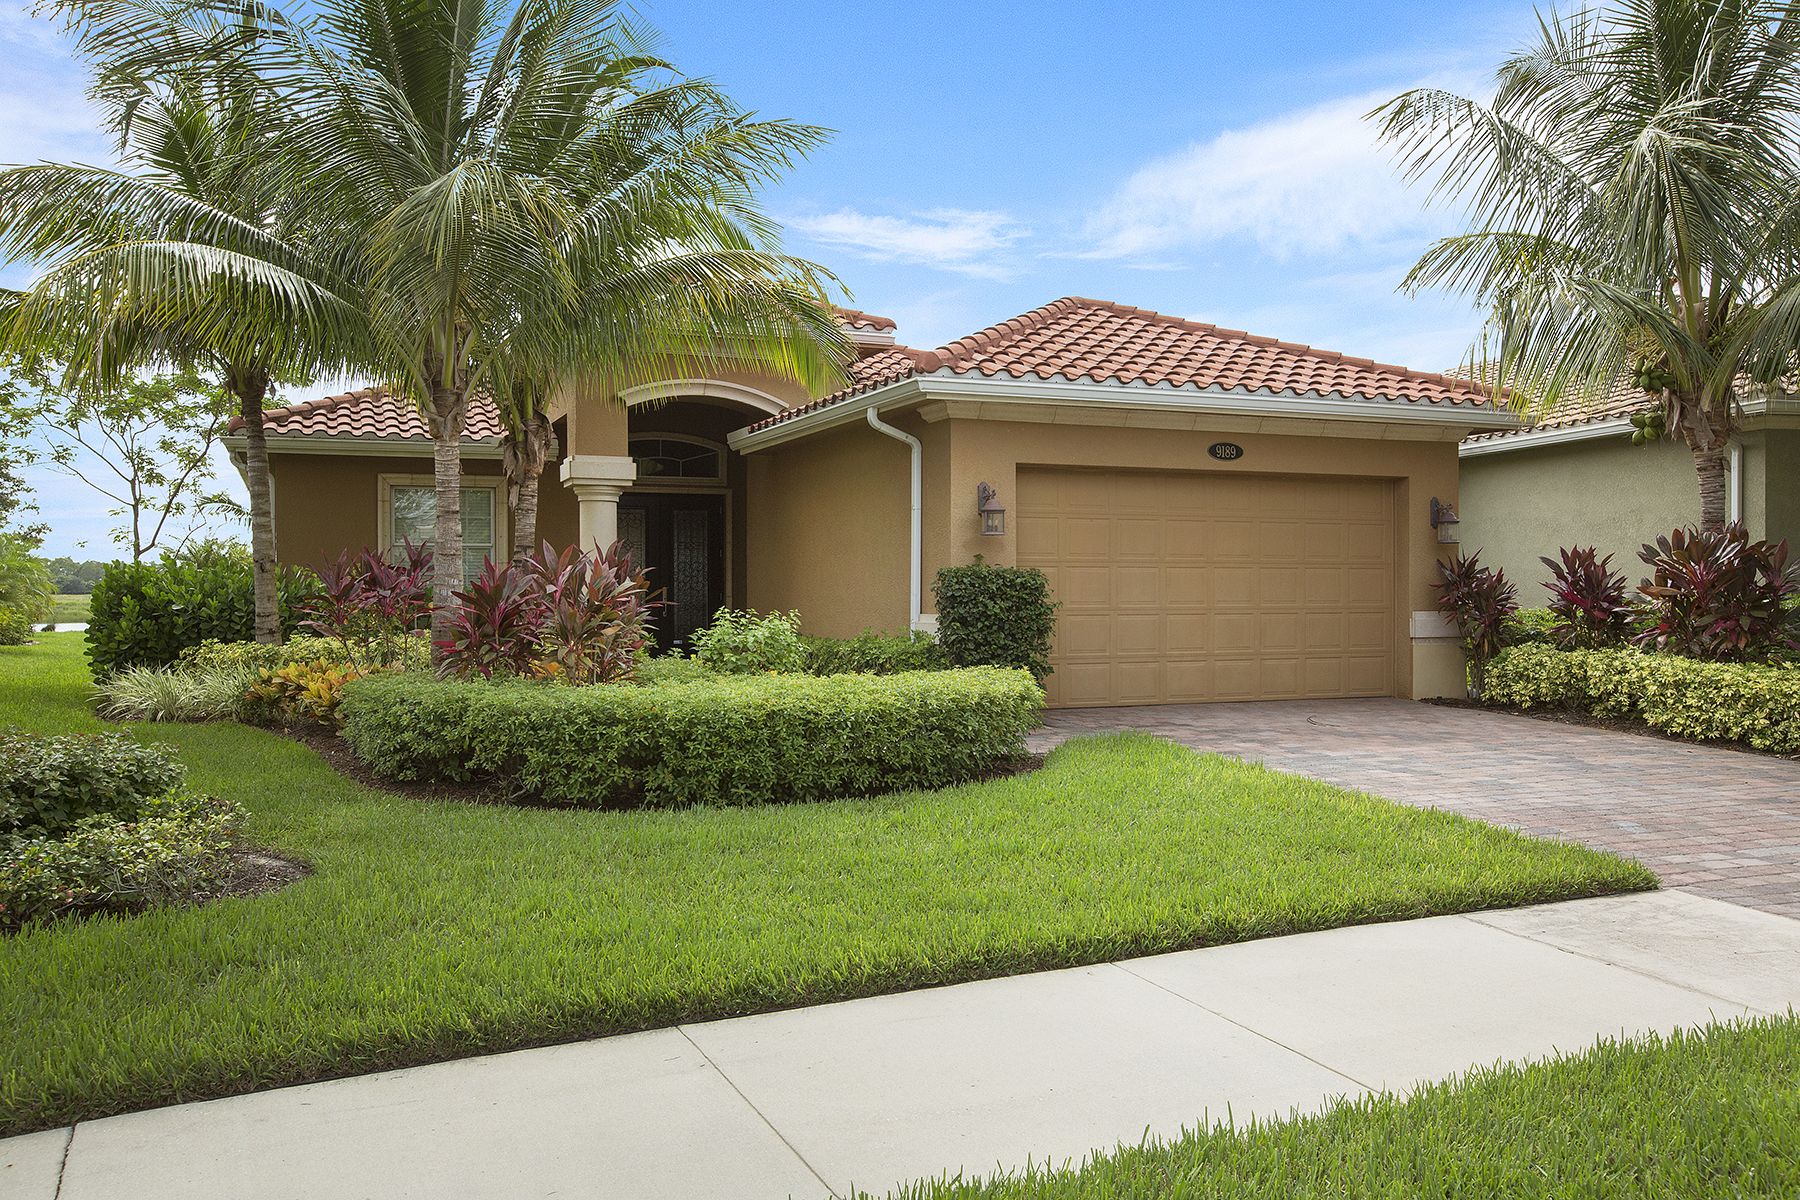 Single Family Home for Sale at 9189 Campanile Cir , Naples, FL 34114 9189 Campanile Cir Naples, Florida, 34114 United States